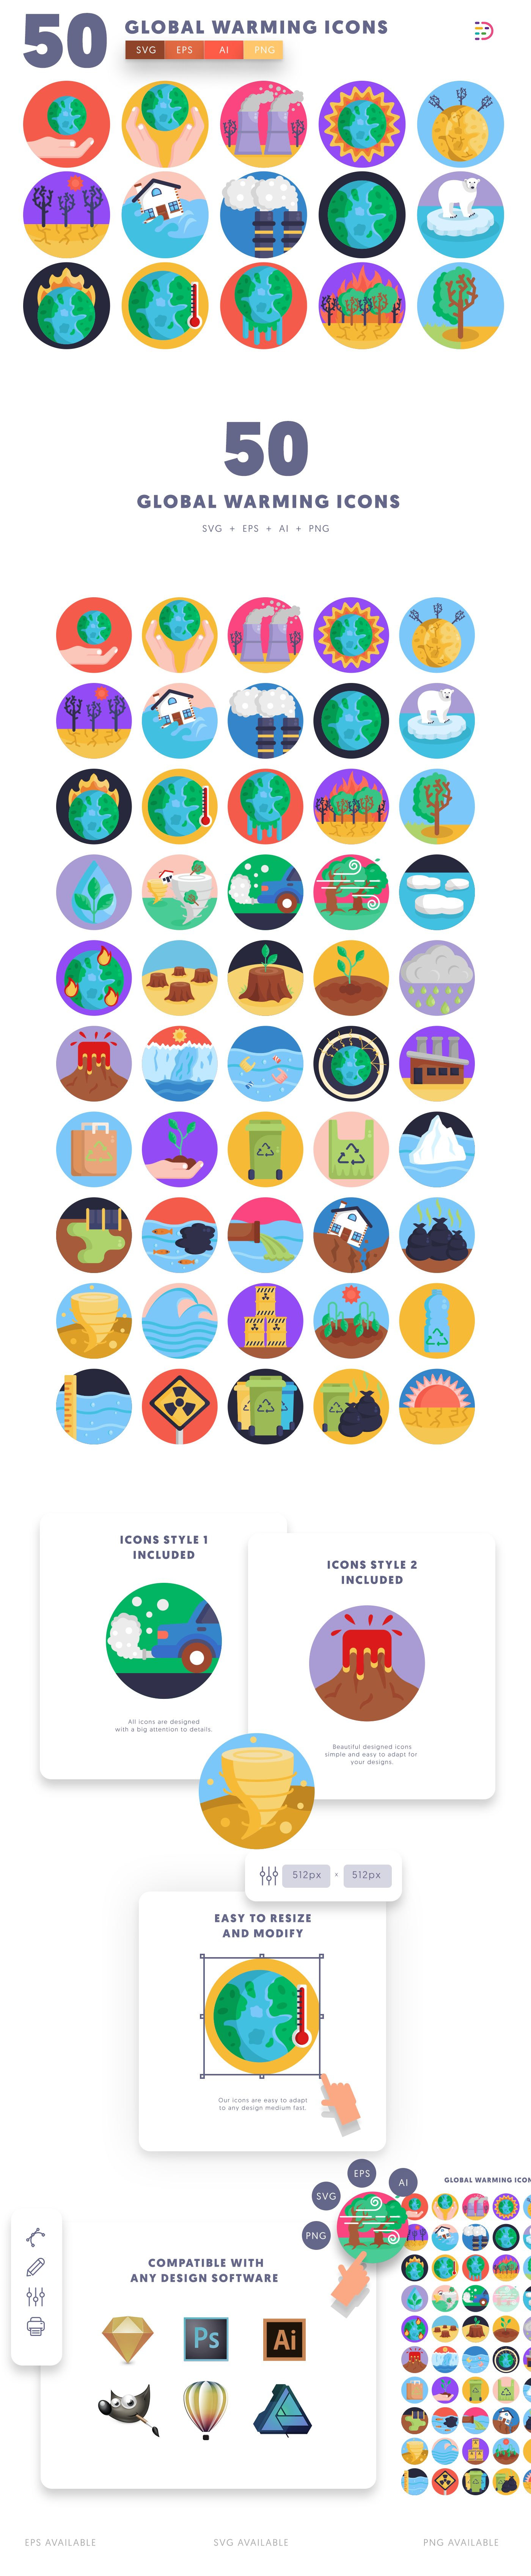 Global Warming icons info graphic